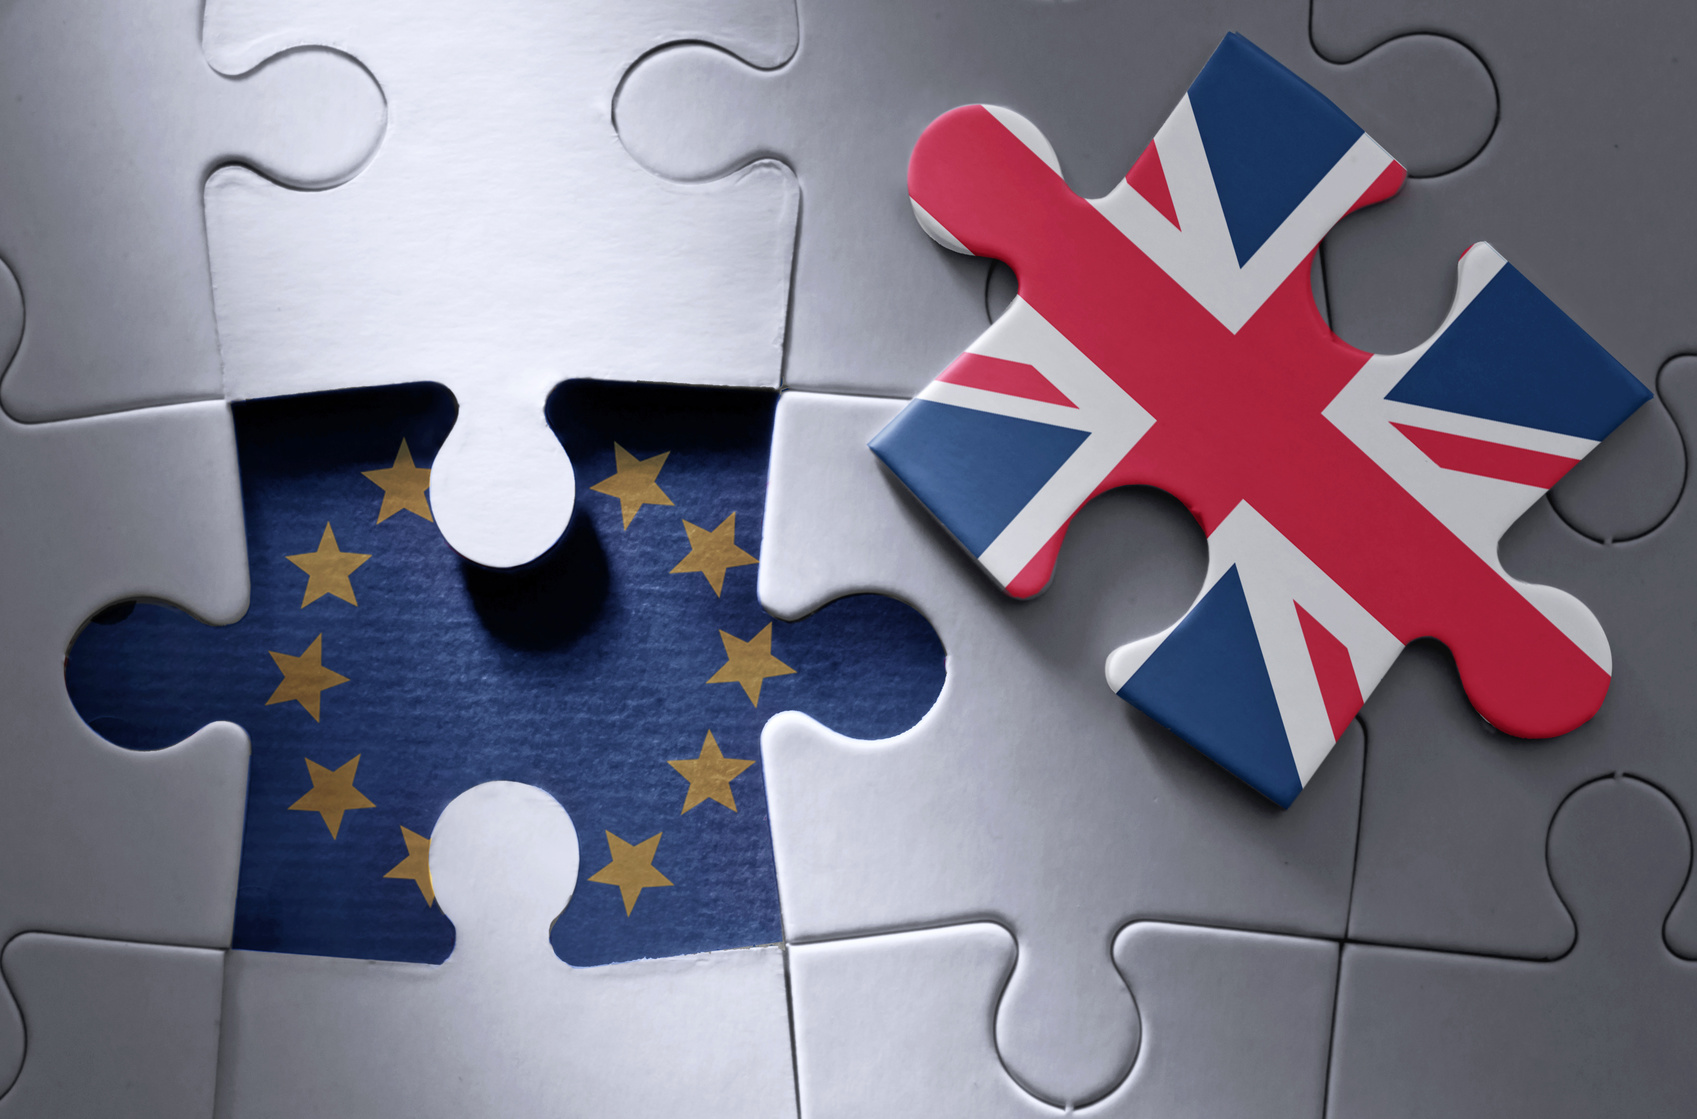 image of jigsaw puzzle wih EU flag and Union Jack flag pieces